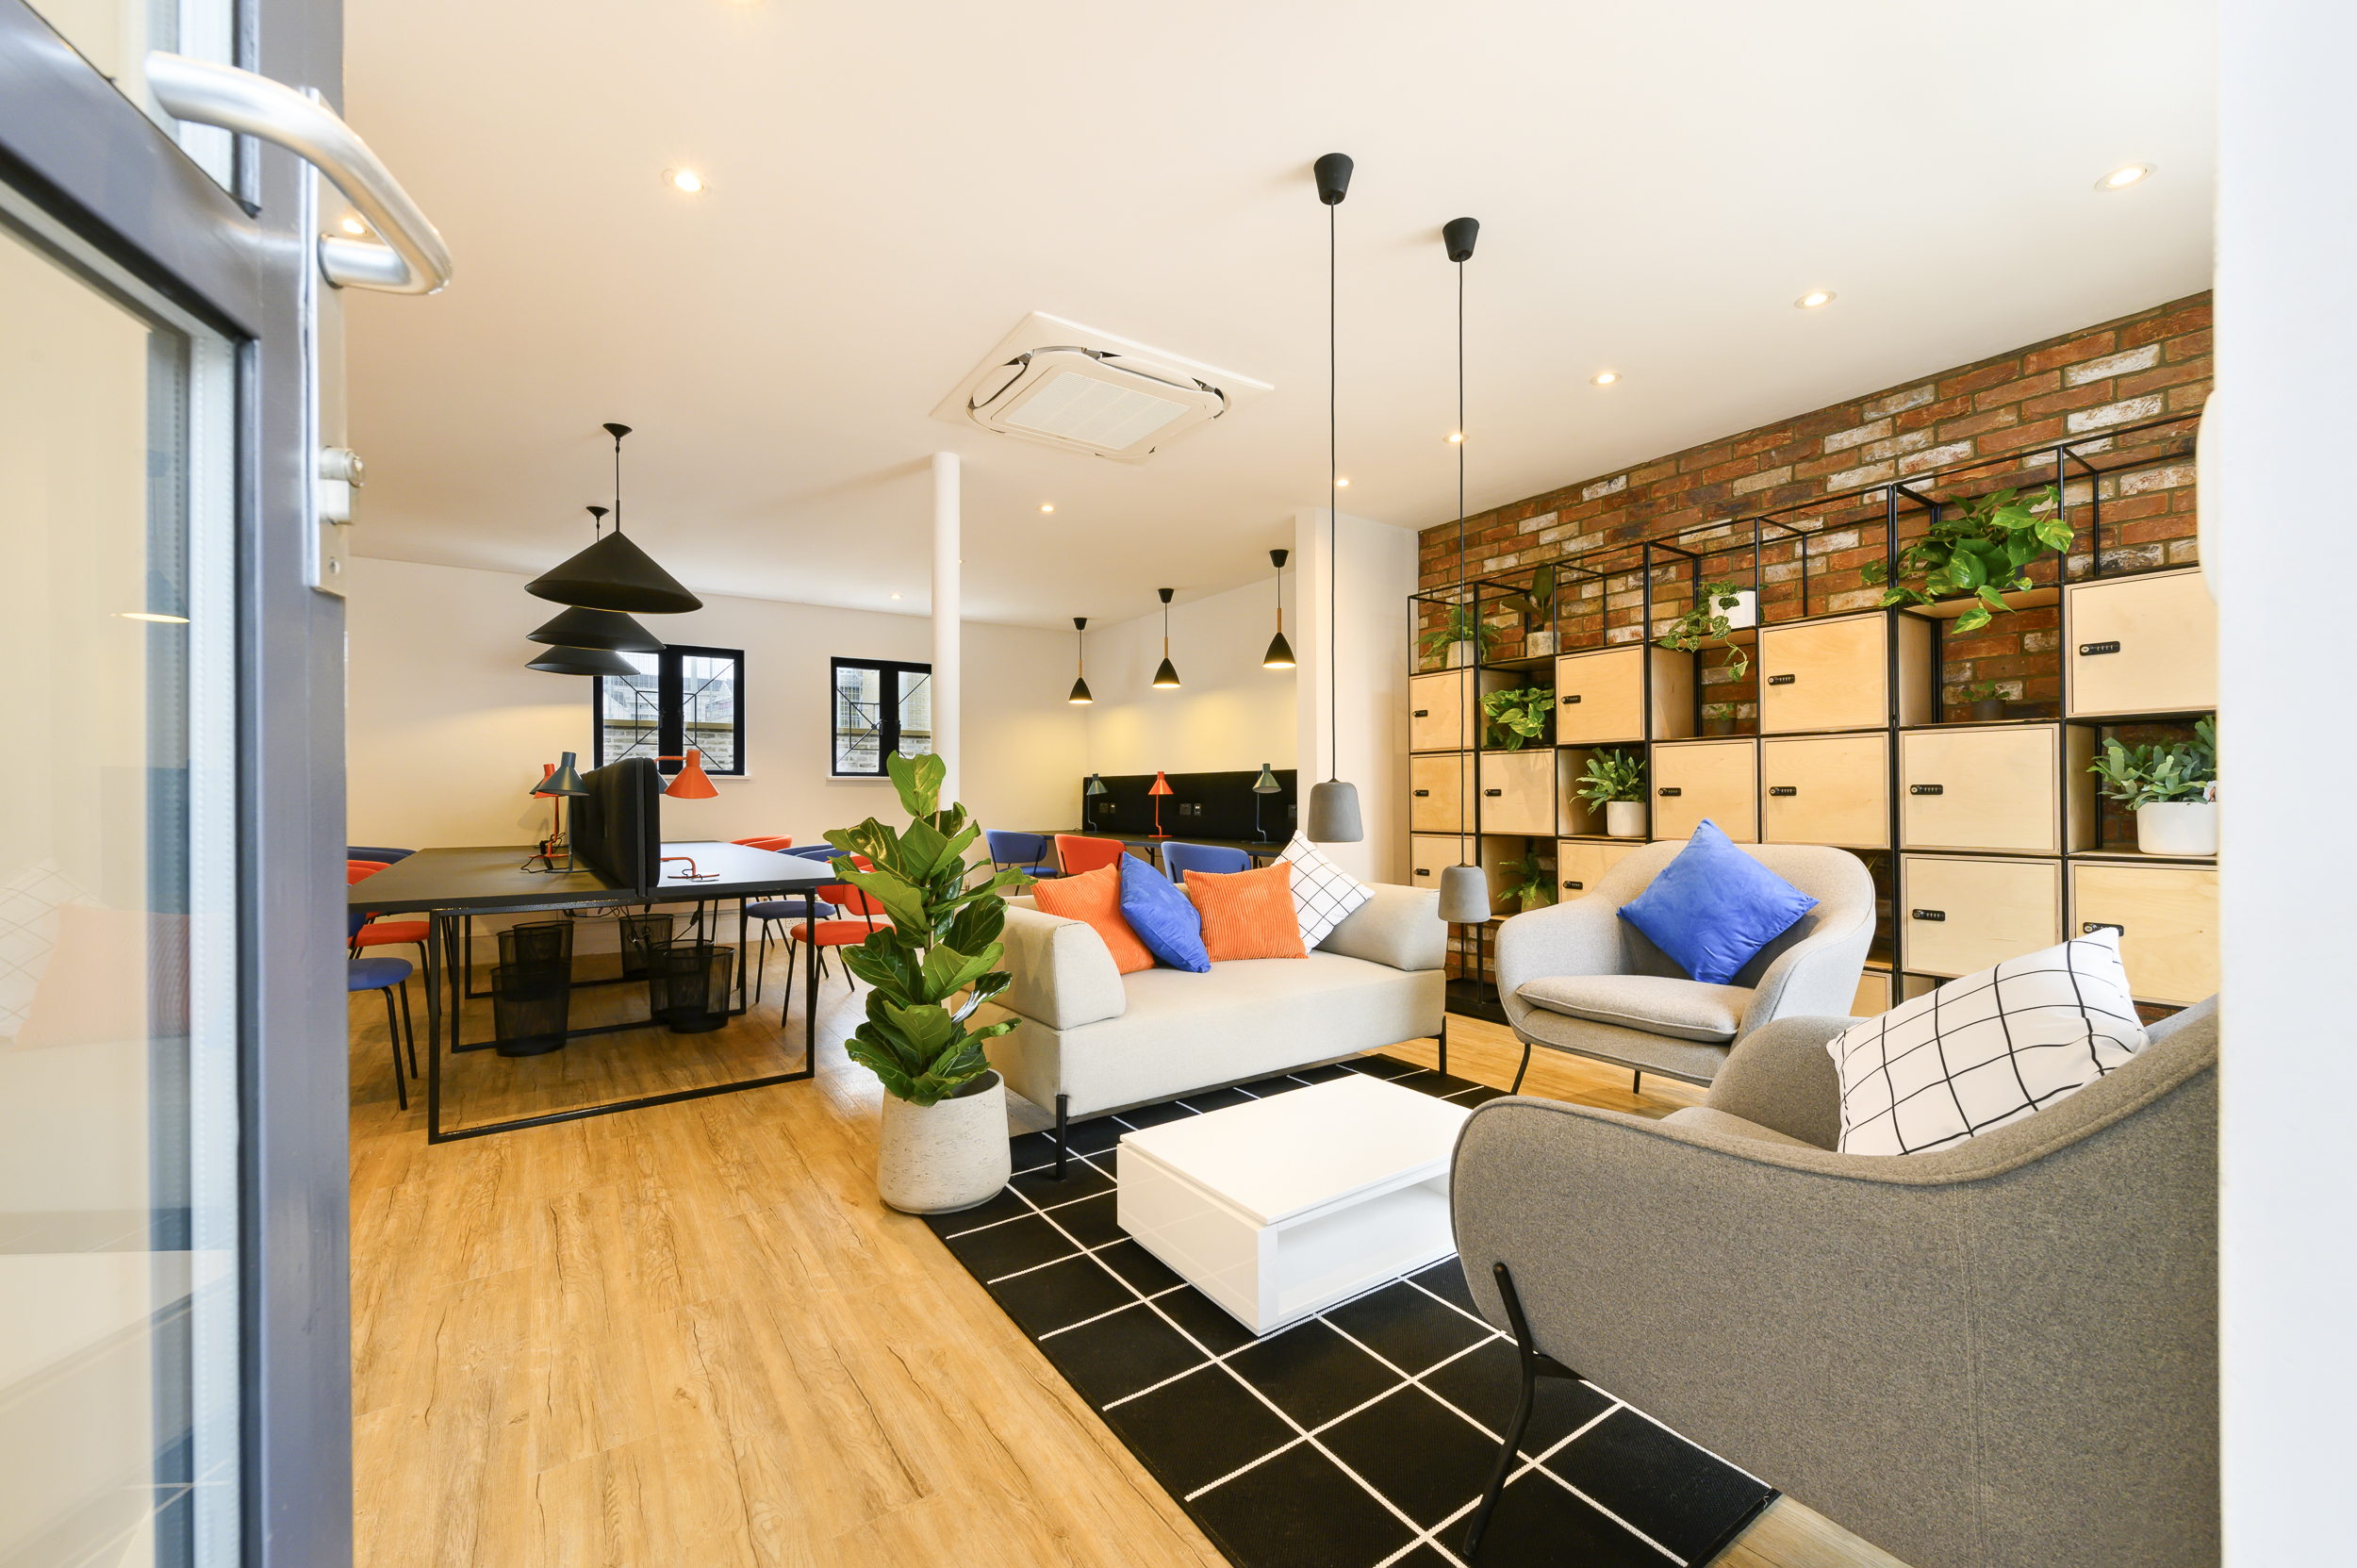 A colourful co-working space at Worlds End Studios with seating, lockers and spacious desks.